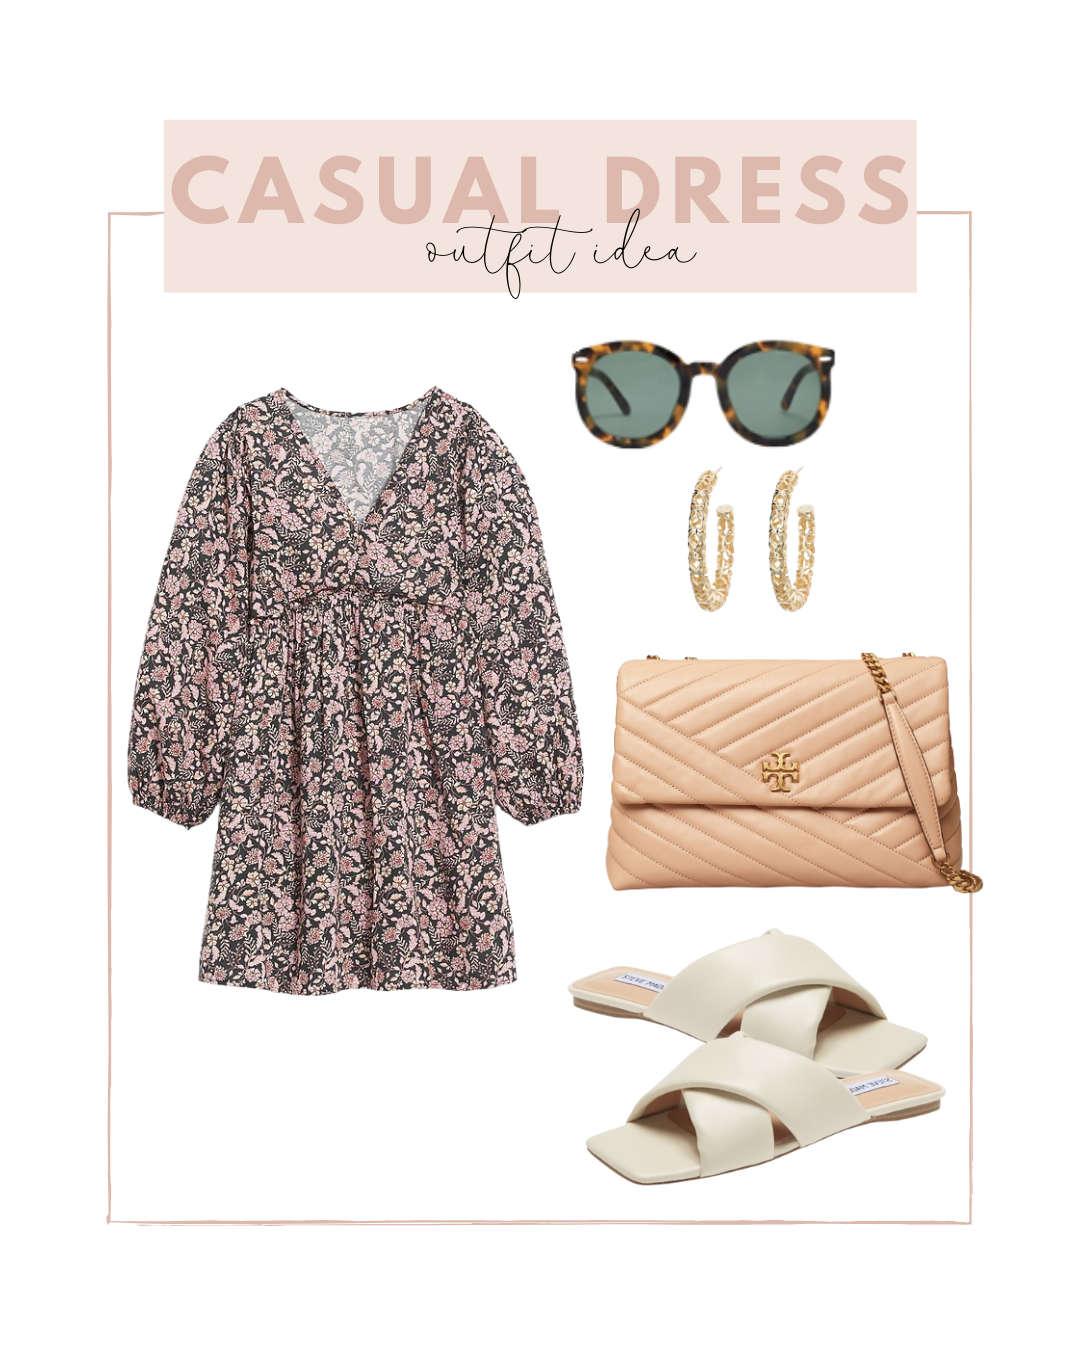 Long Sleeve Shift Dress outfit